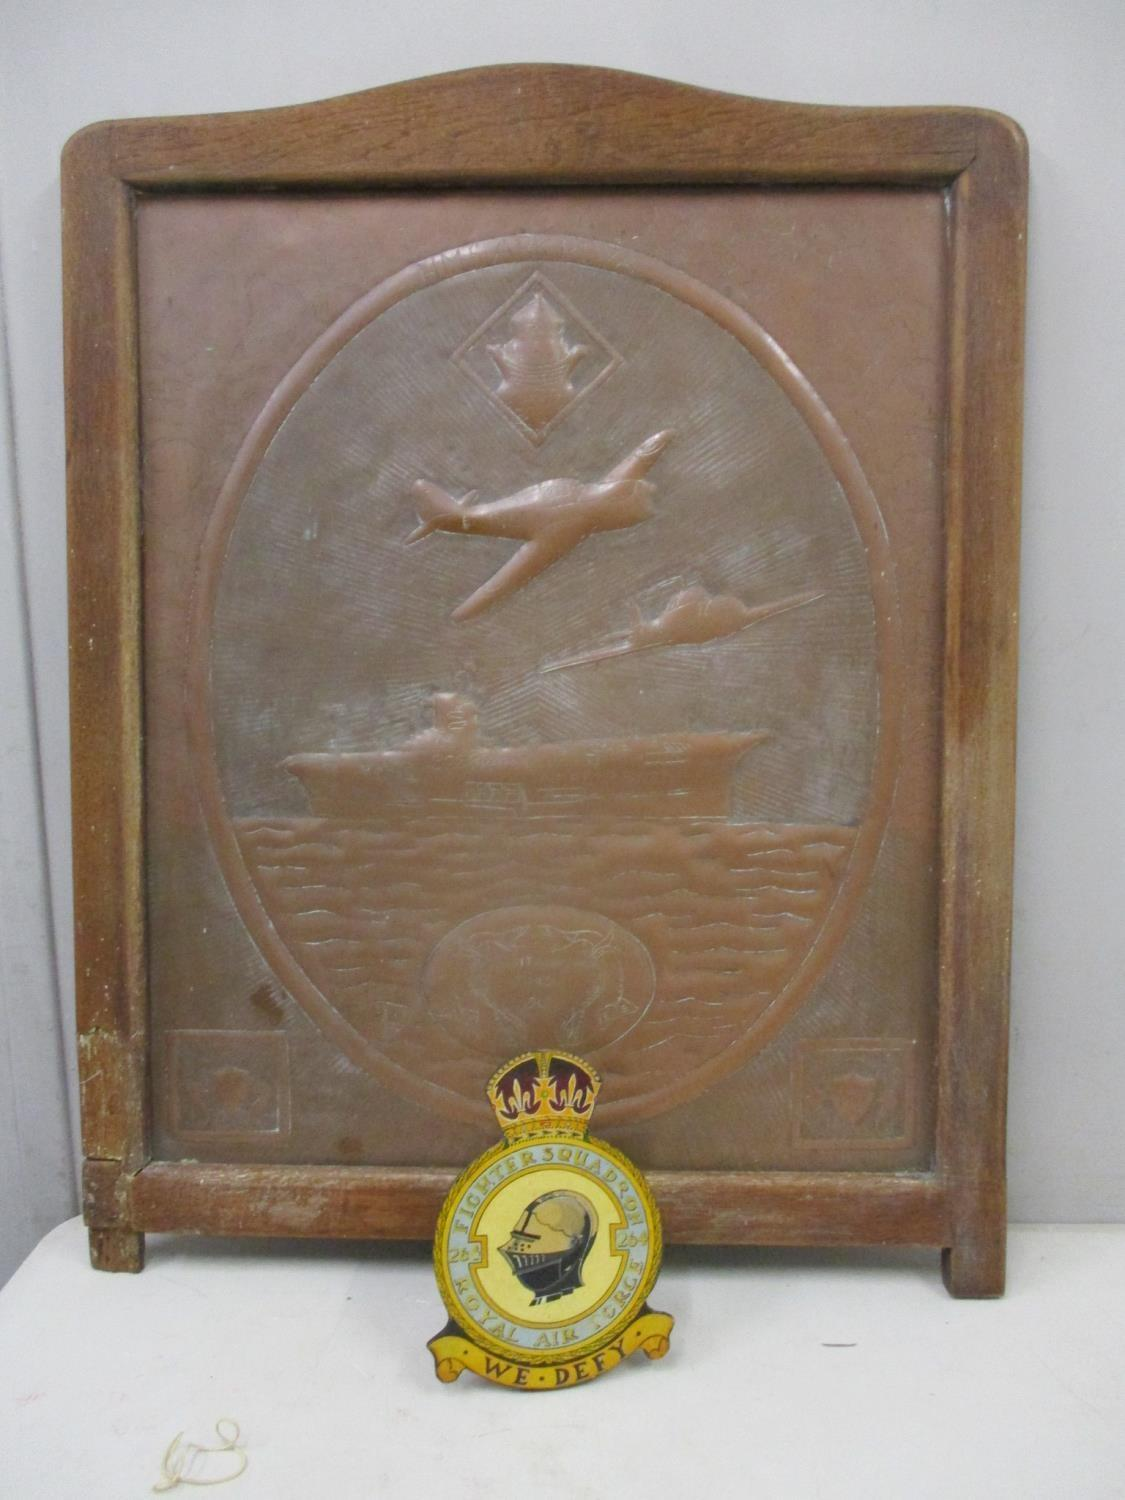 Lot 137 - A WWII copper panel HMS Ark Royal, Mediterranean March 1940, embossed with two planes and a ship, in